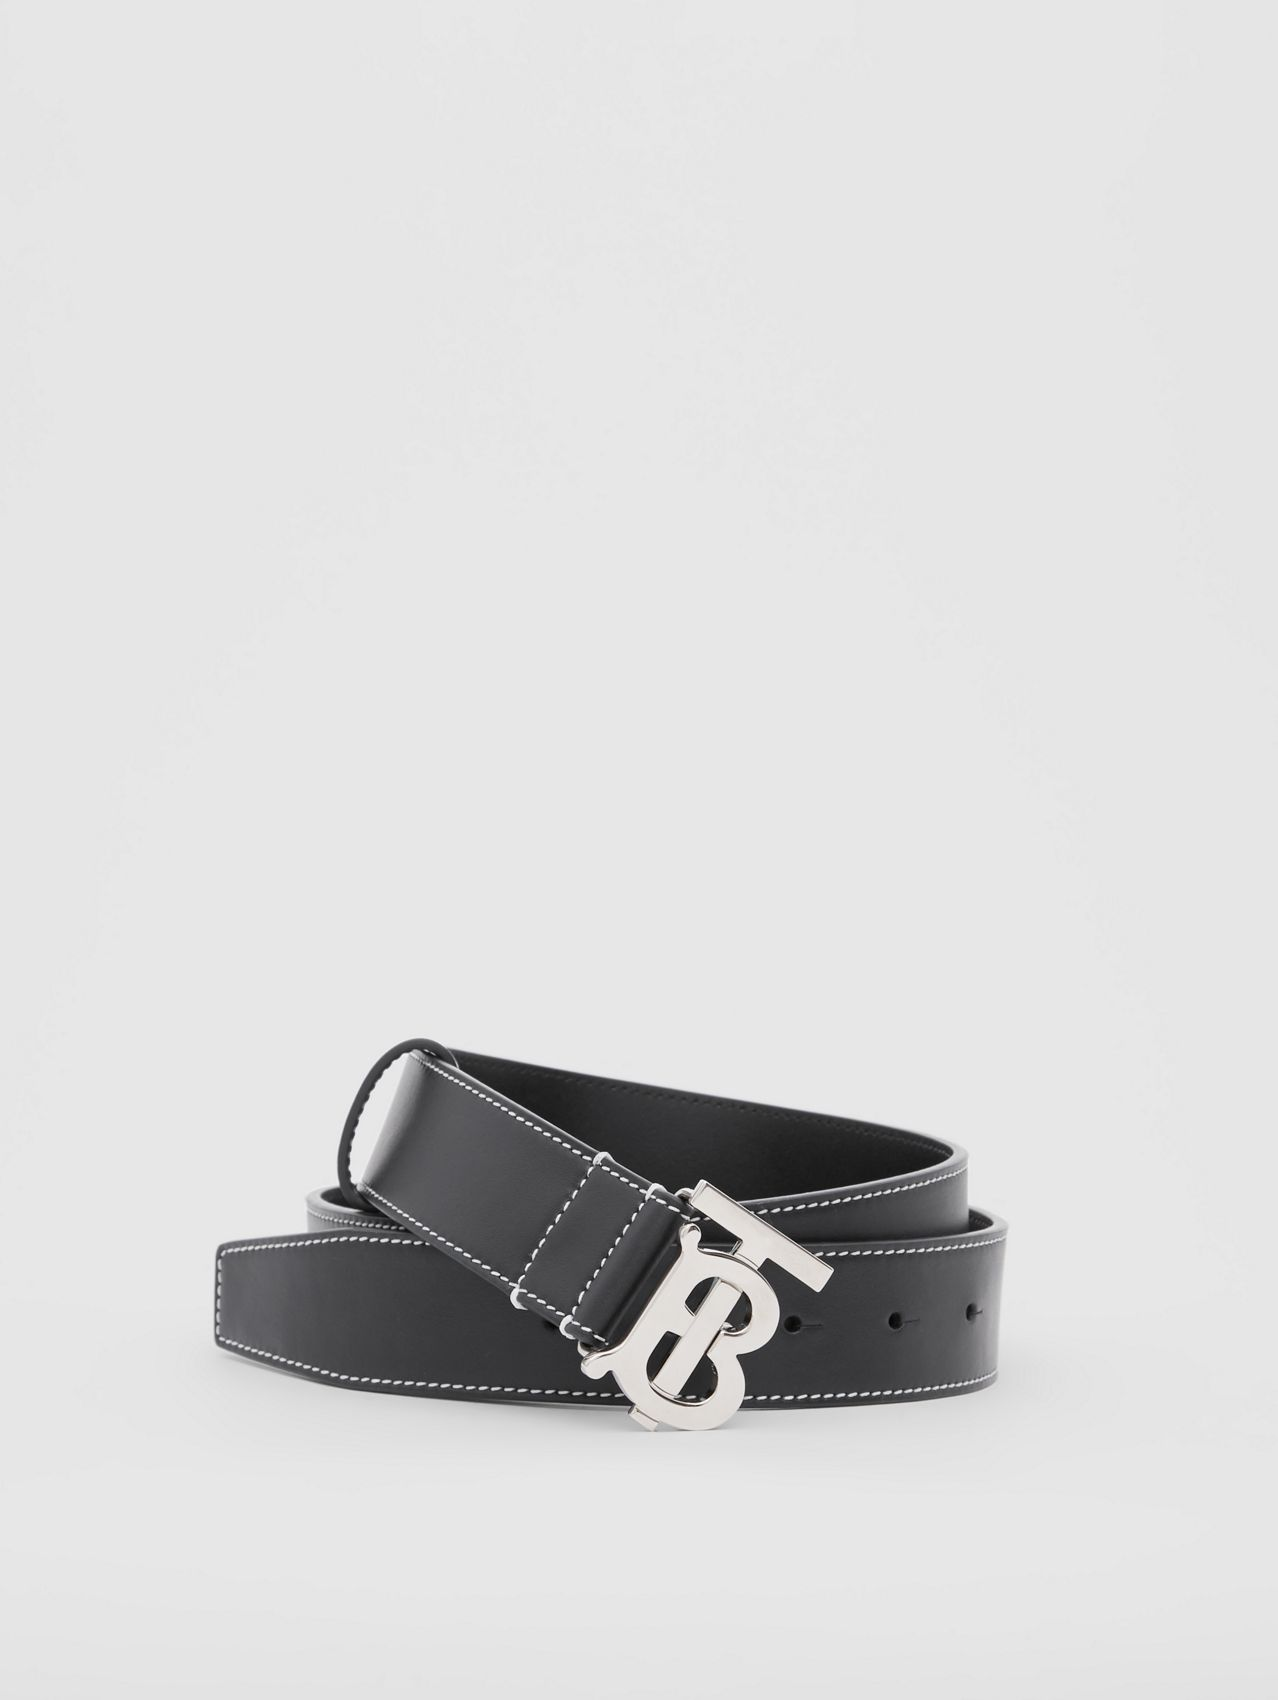 Monogram Motif Topstitched Leather Belt in Black